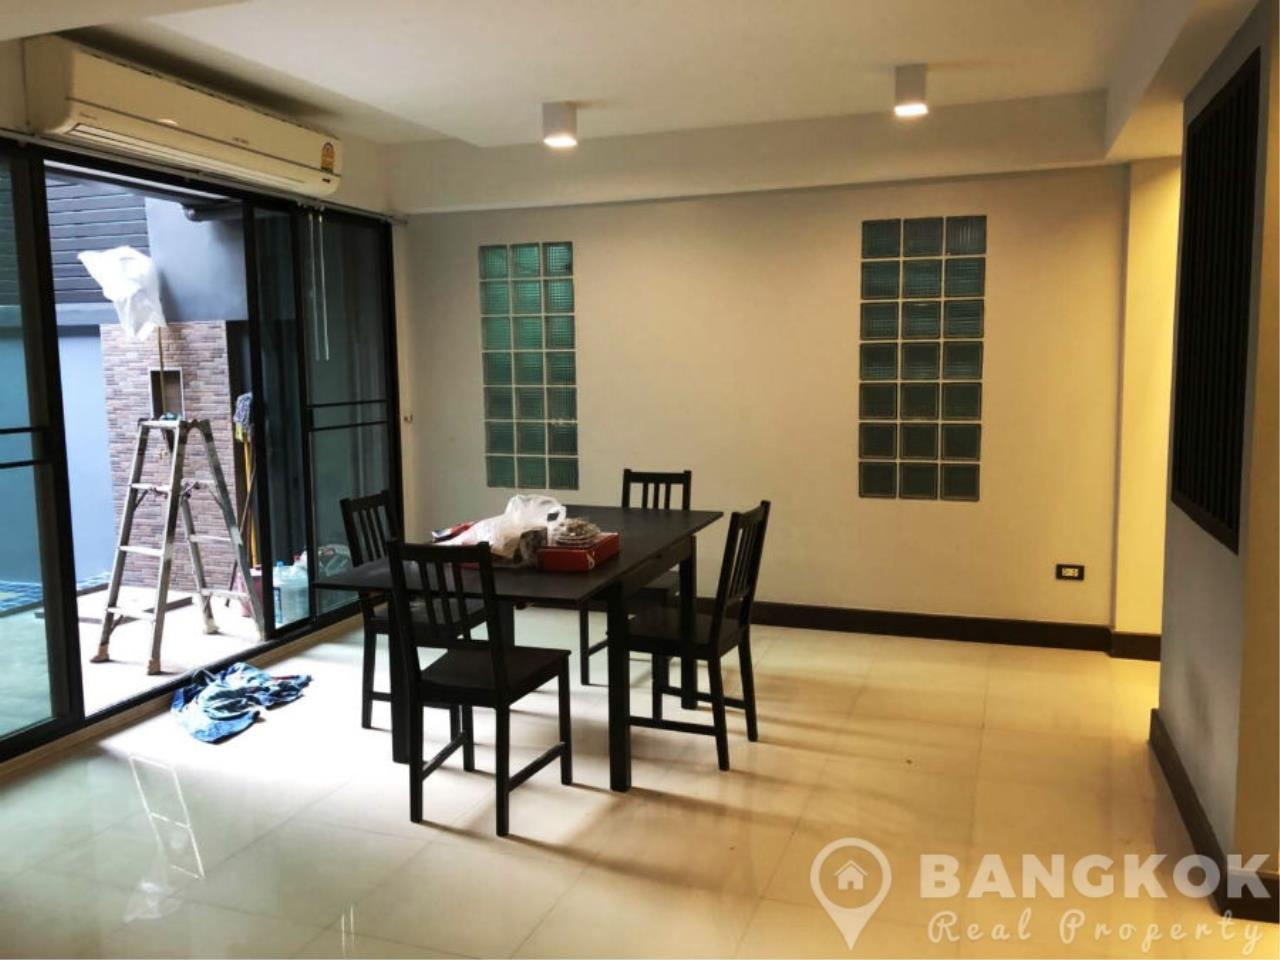 Bangkok Real Property Agency's Modern Detached House in Thonglor 4 Beds with Private Swimming Pool 6